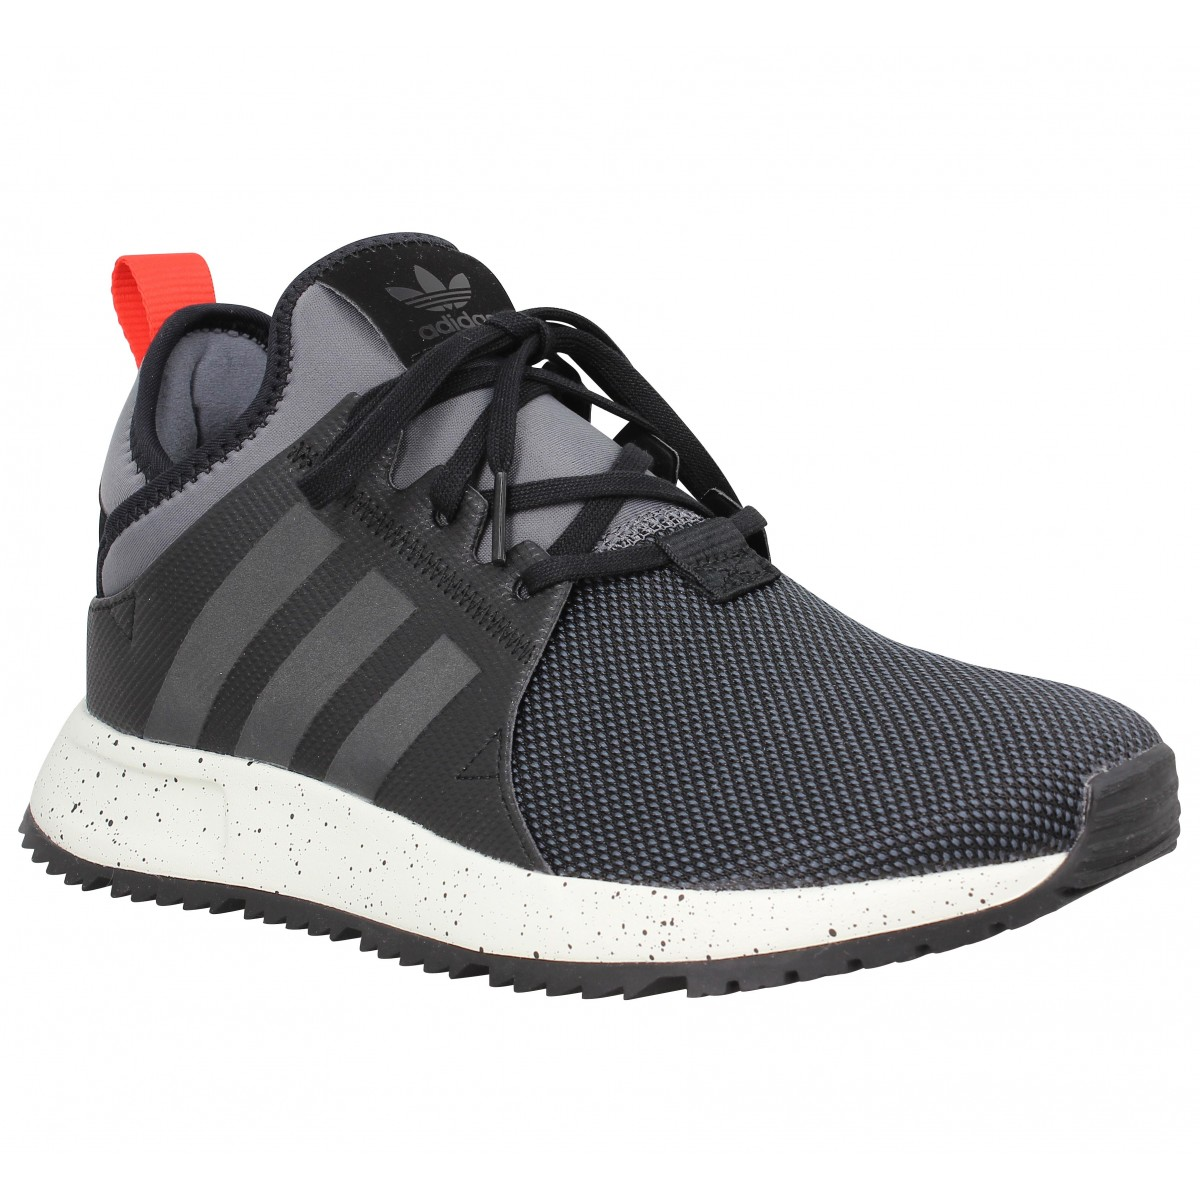 Adidas Homme X Plr Sneaker Boot Toile...